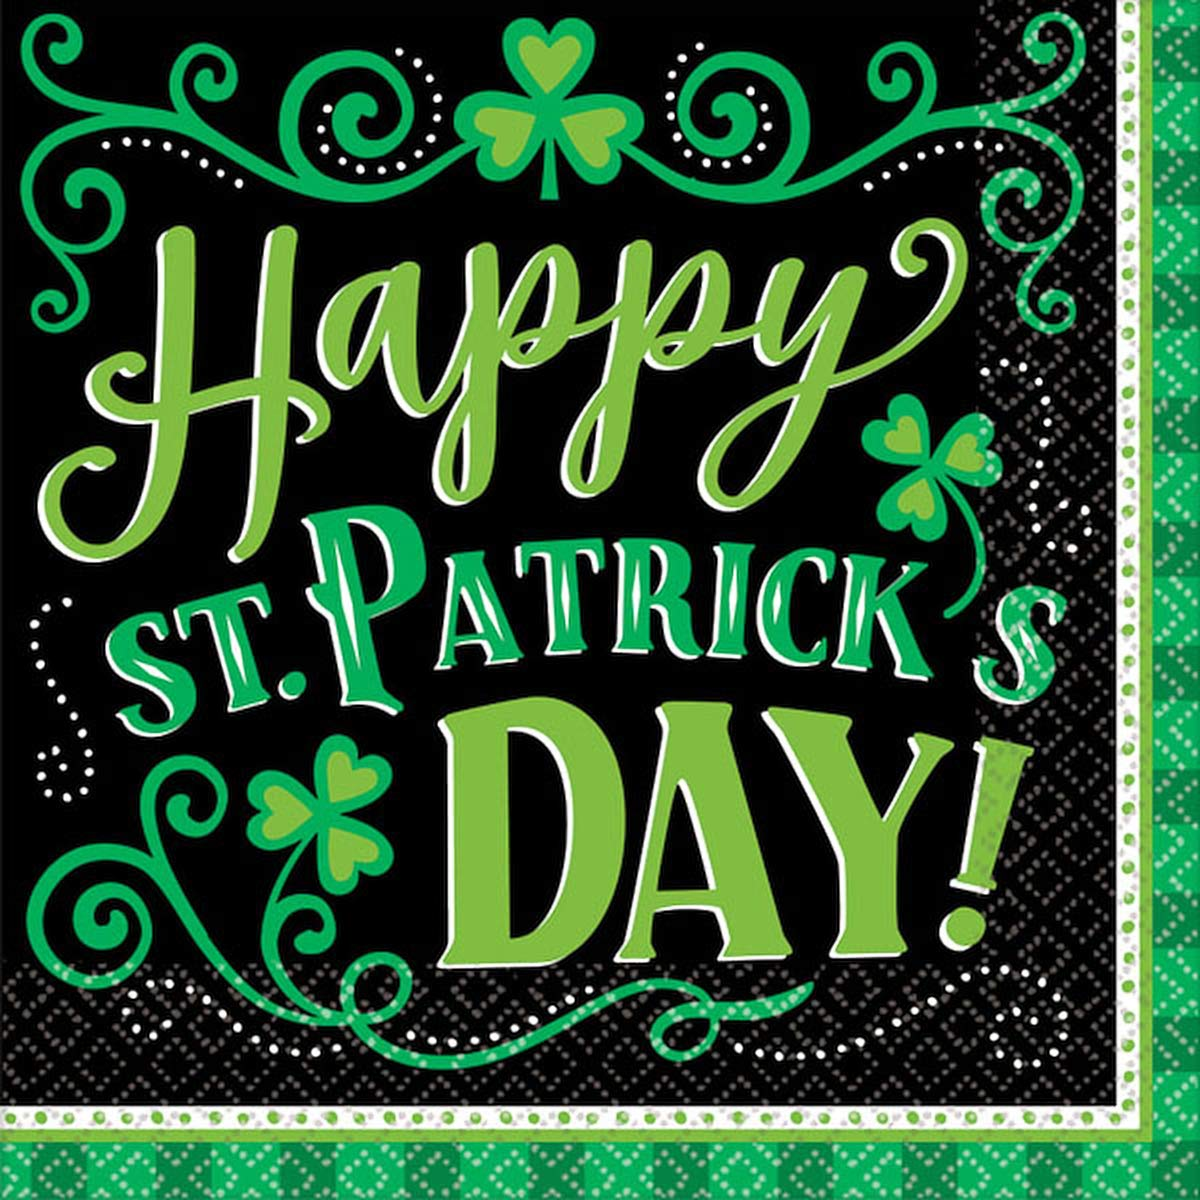 ''St. Patrick's Day'' Clover Me Lucky Bpp Luncheon Napkins, 6.5'' X 6.5'', 6 Pk